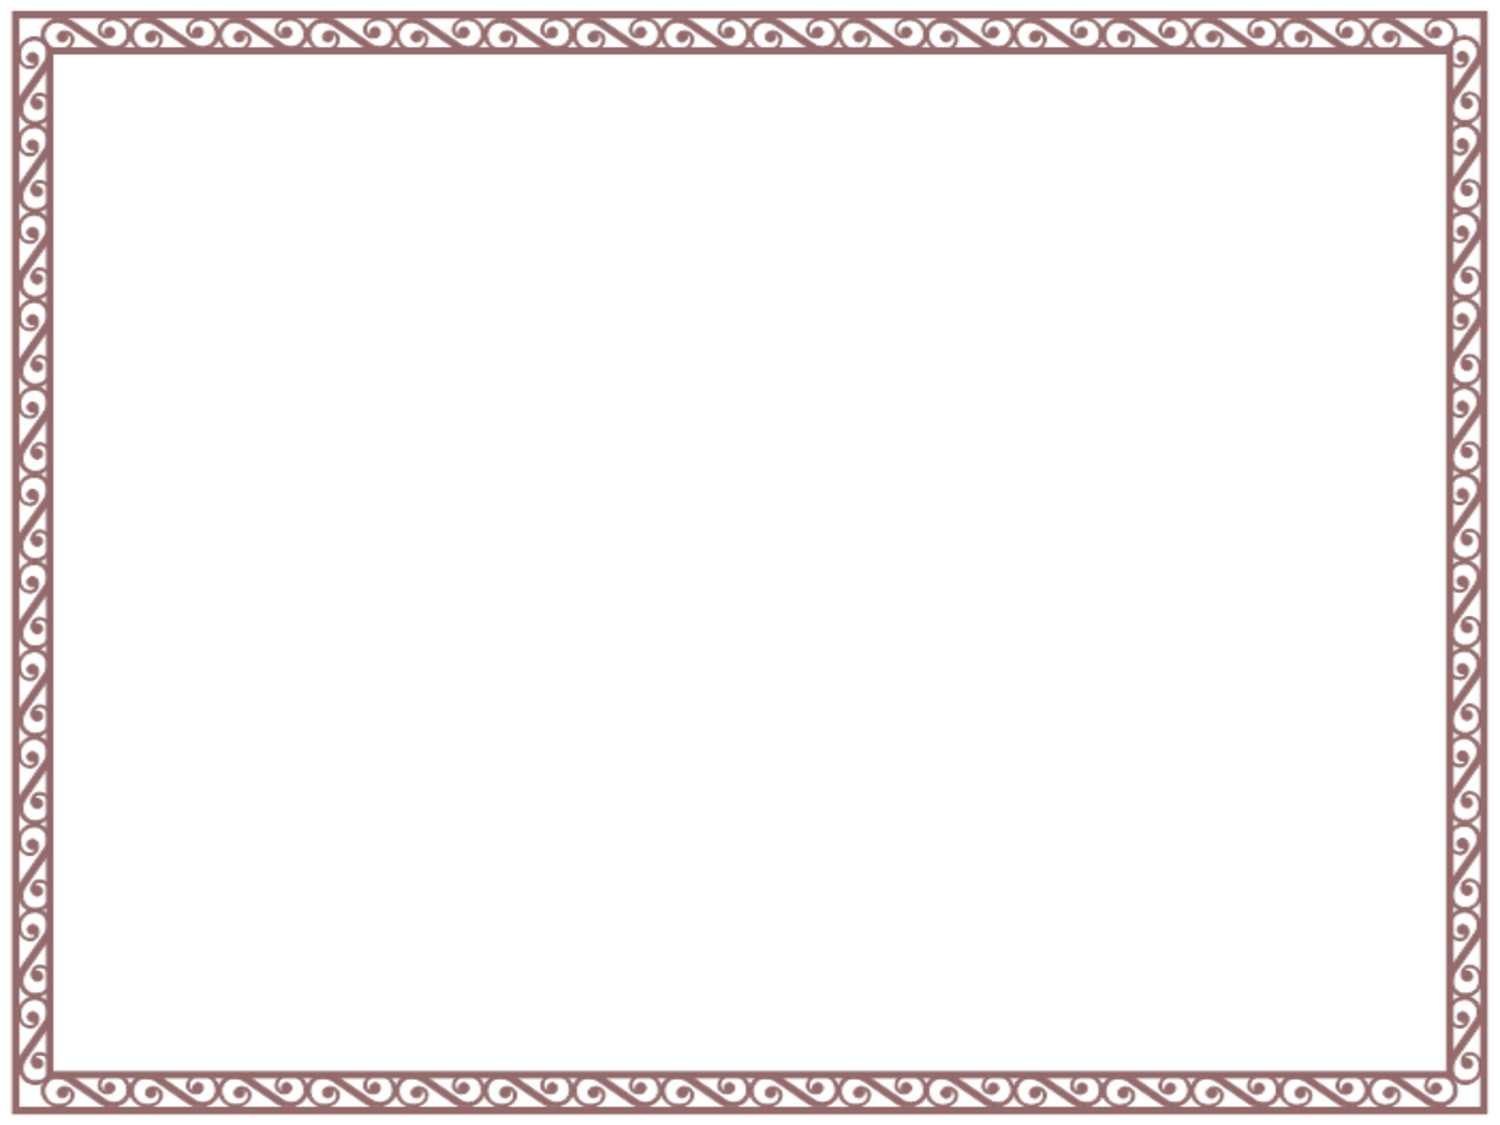 Border Template for Word Free Certificate Borders Download Free Clip Art Free